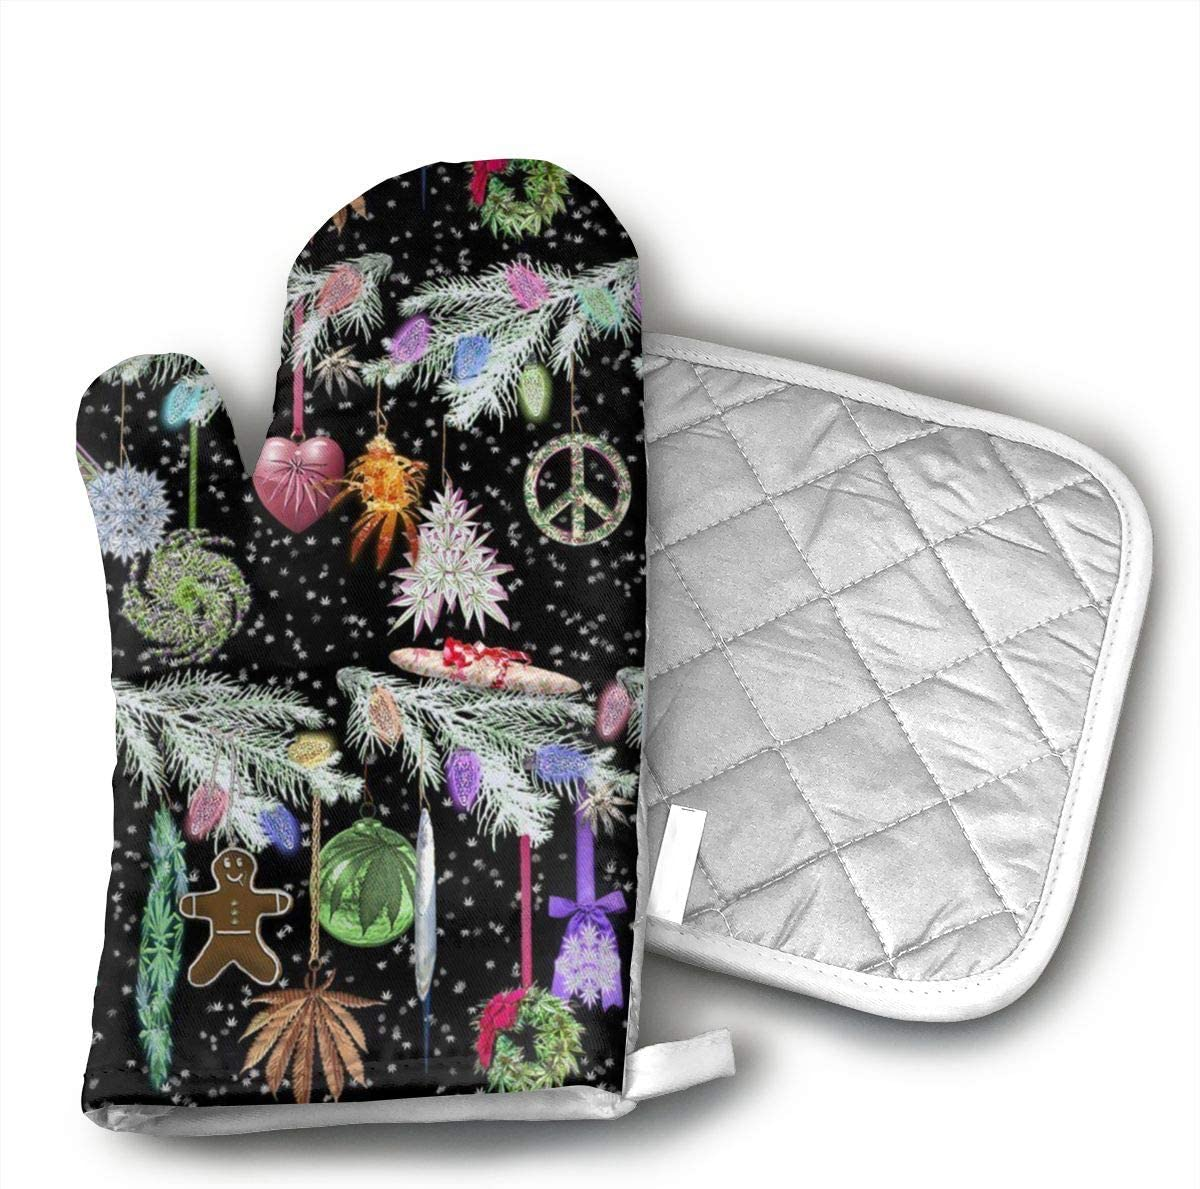 Wiqo9 Cannabis Xmas Branches Oven Mitts and Pot Holders Kitchen Mitten Cooking Gloves,Cooking, Baking, BBQ.